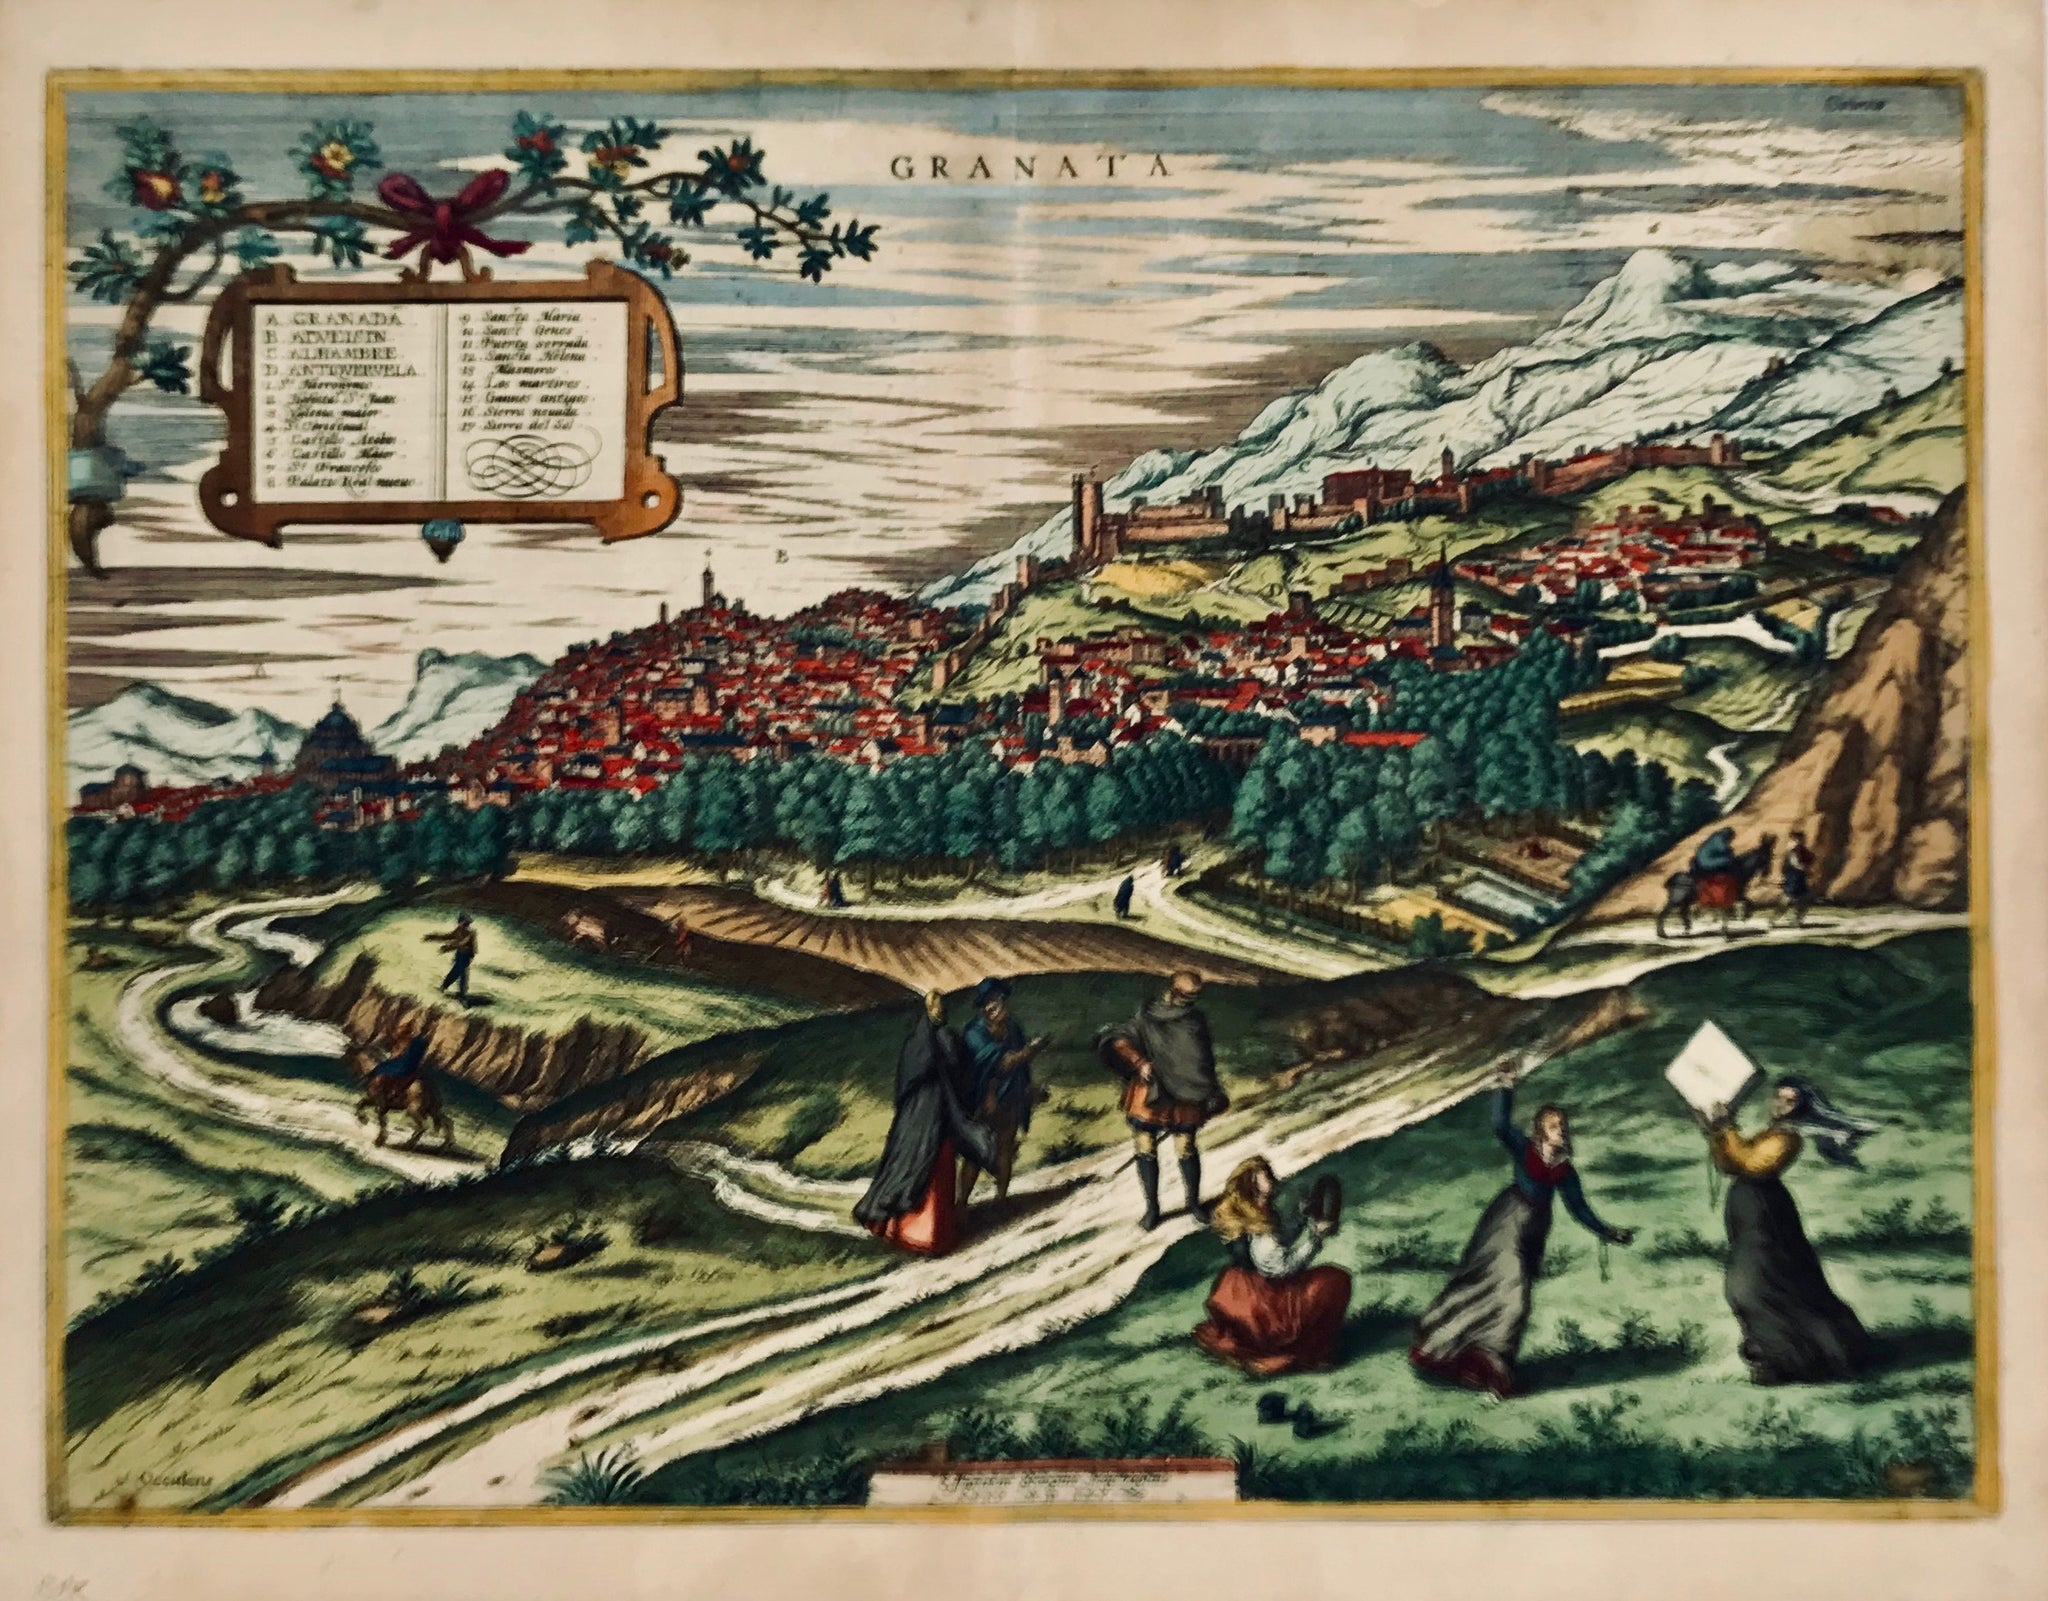 """Granata"" (Granada). Originally colored copper engraving by Georg Hoefnagel ( 1543-1600) dated in the plate 1565, but published in ""Civitates Orbis Terrarum"" by Georg Braun and Franz Hogenberg in Cologne ca 1570."